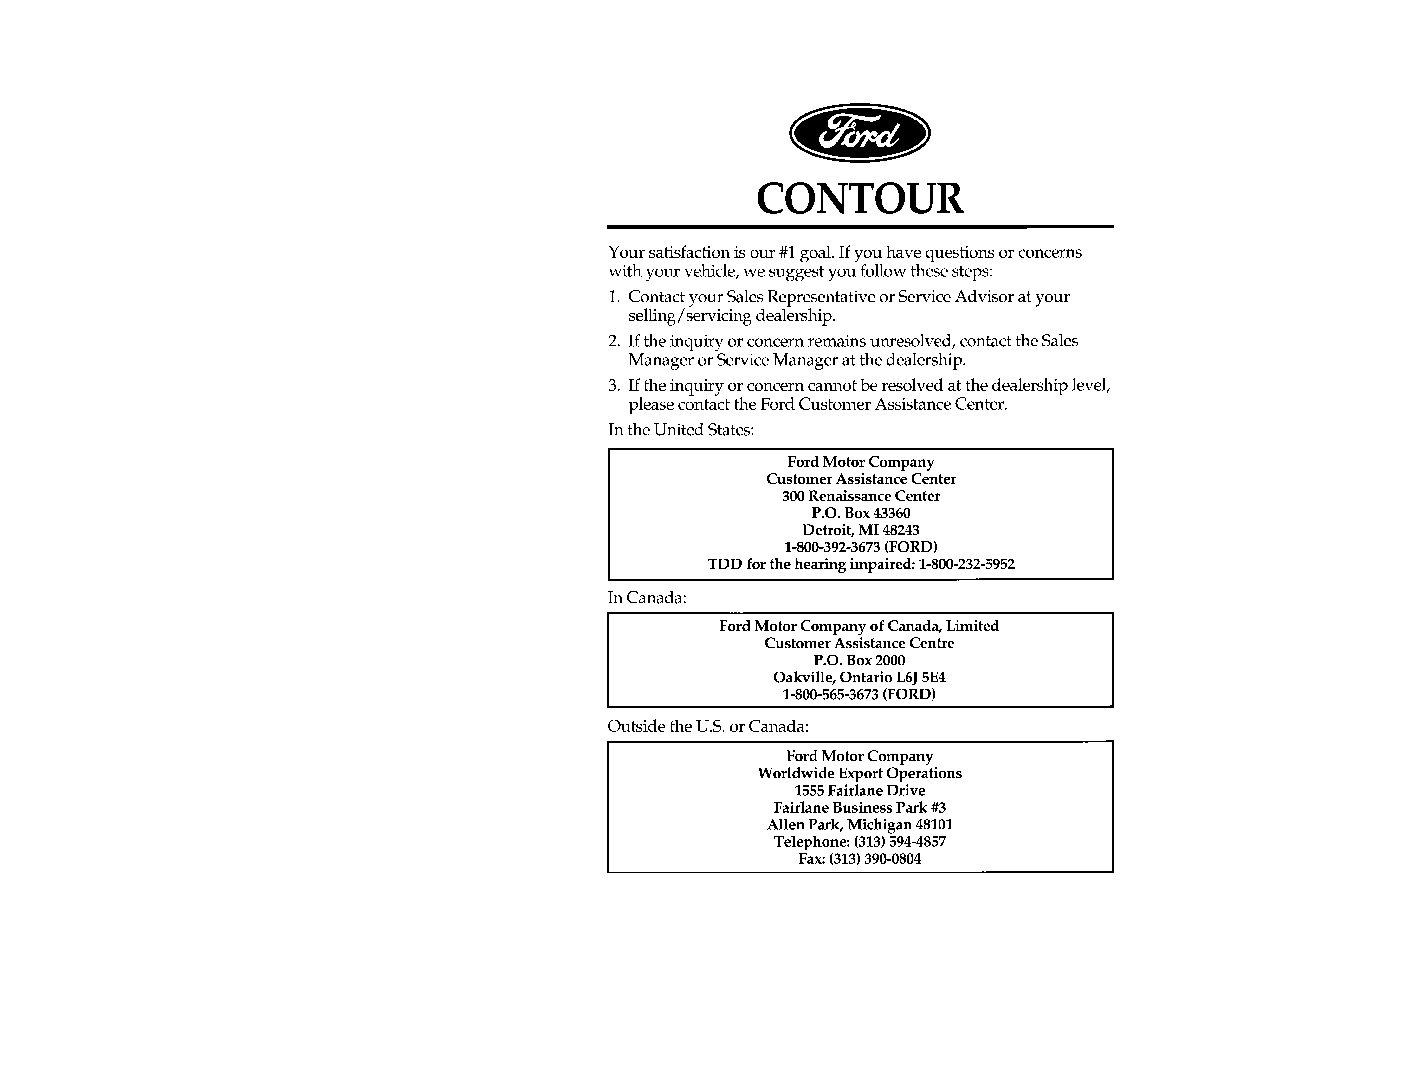 1997 Ford Contour Manual 98 Gl Fuse Box Diagram Owners Just Give Me The Damn Rh Justgivemethedamnmanual Com 1995